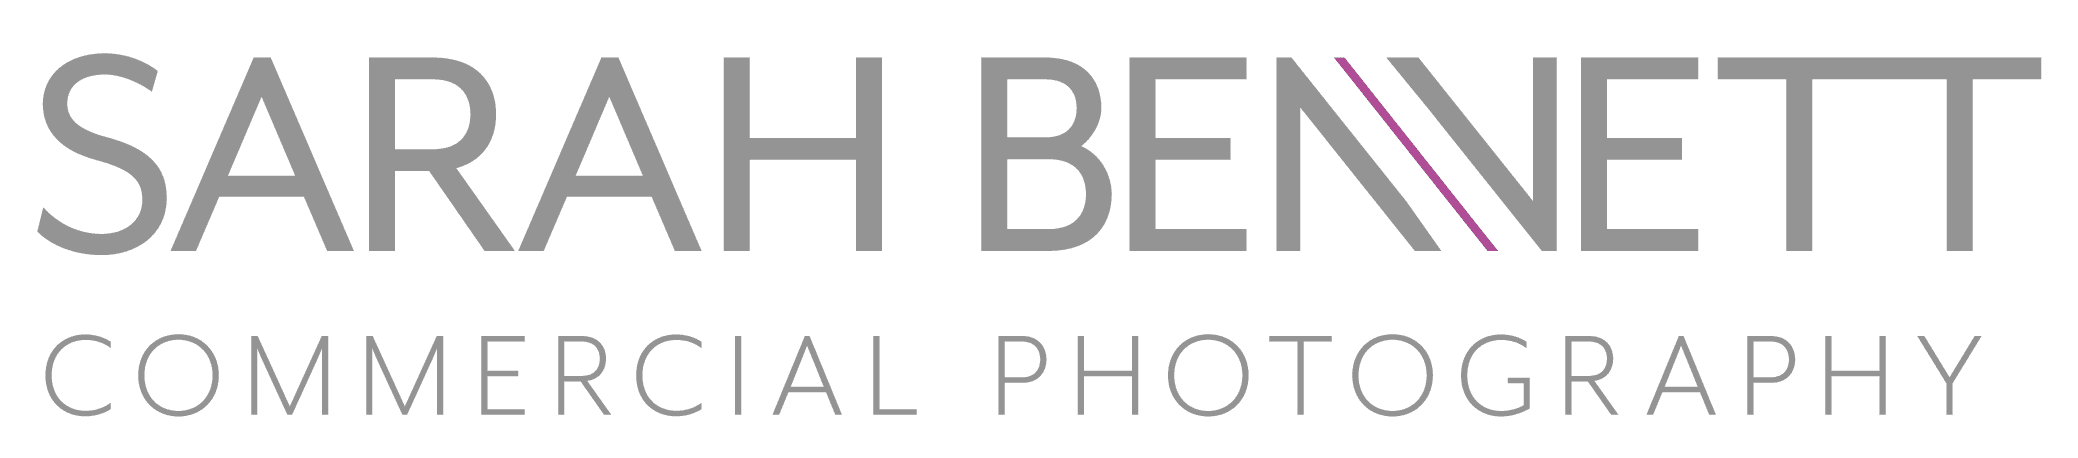 Sarah Bennett Commerical Photography in Sussex Logo